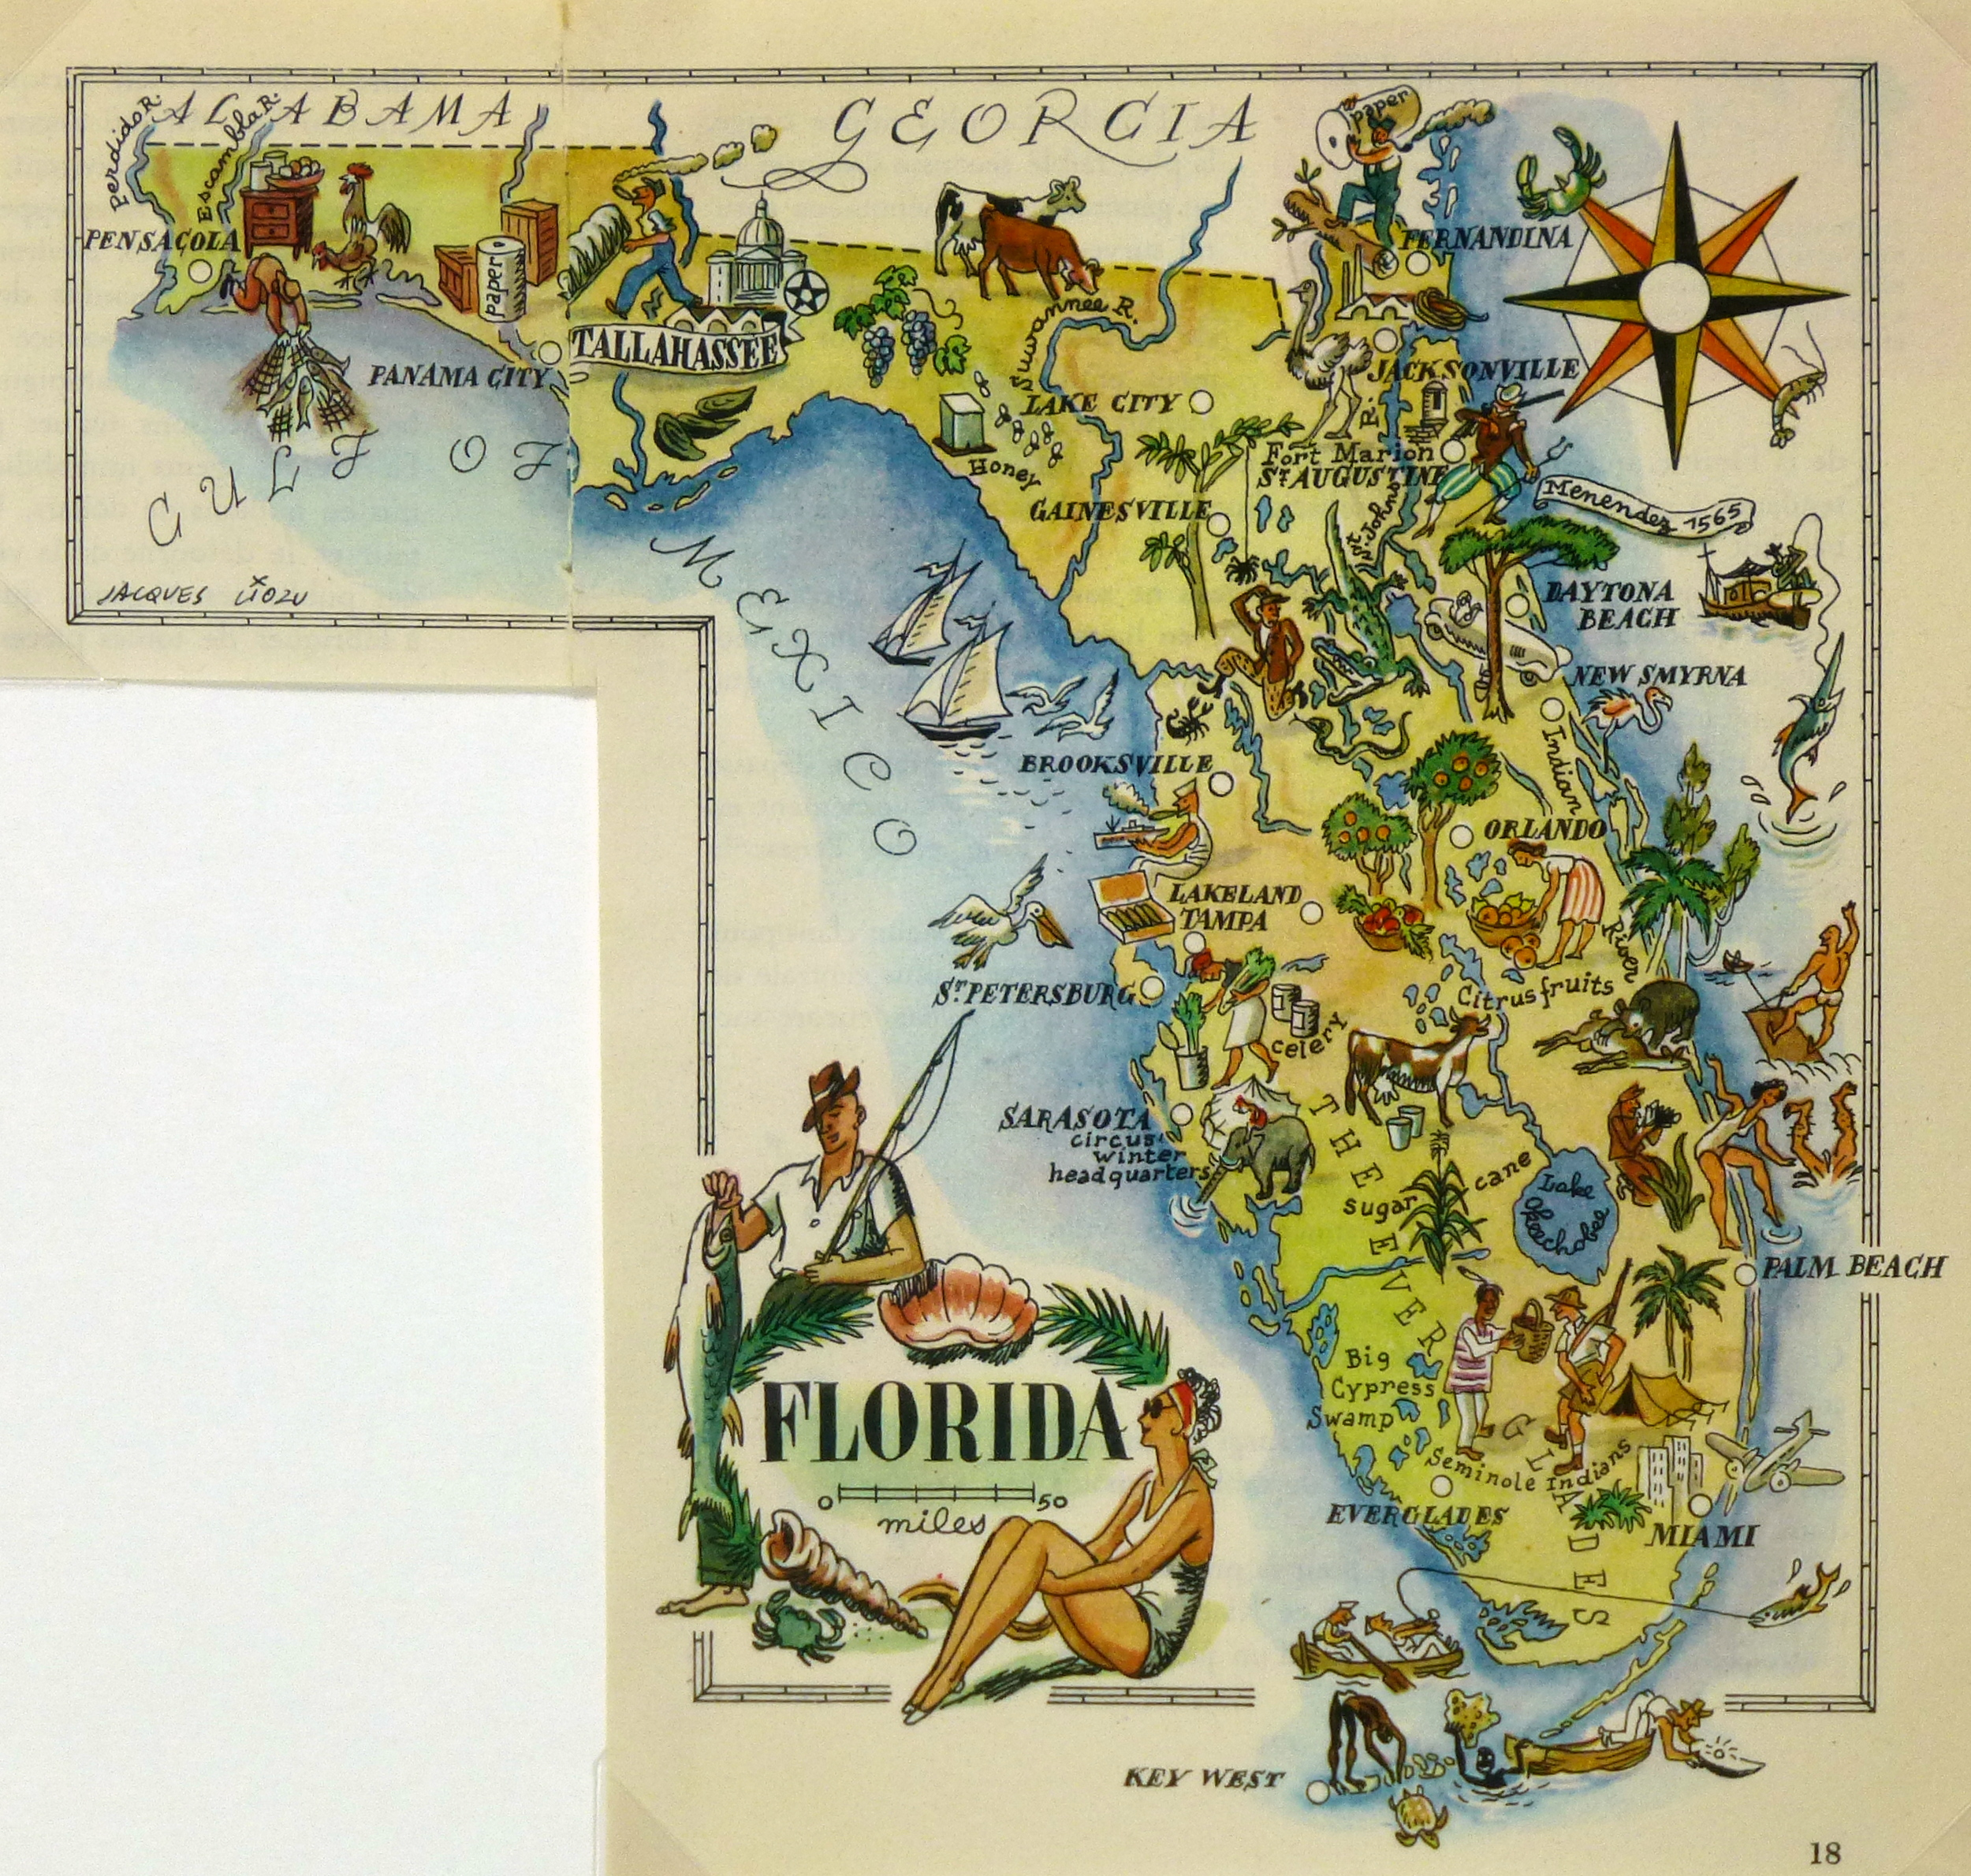 Florida Pictorial Map 1946